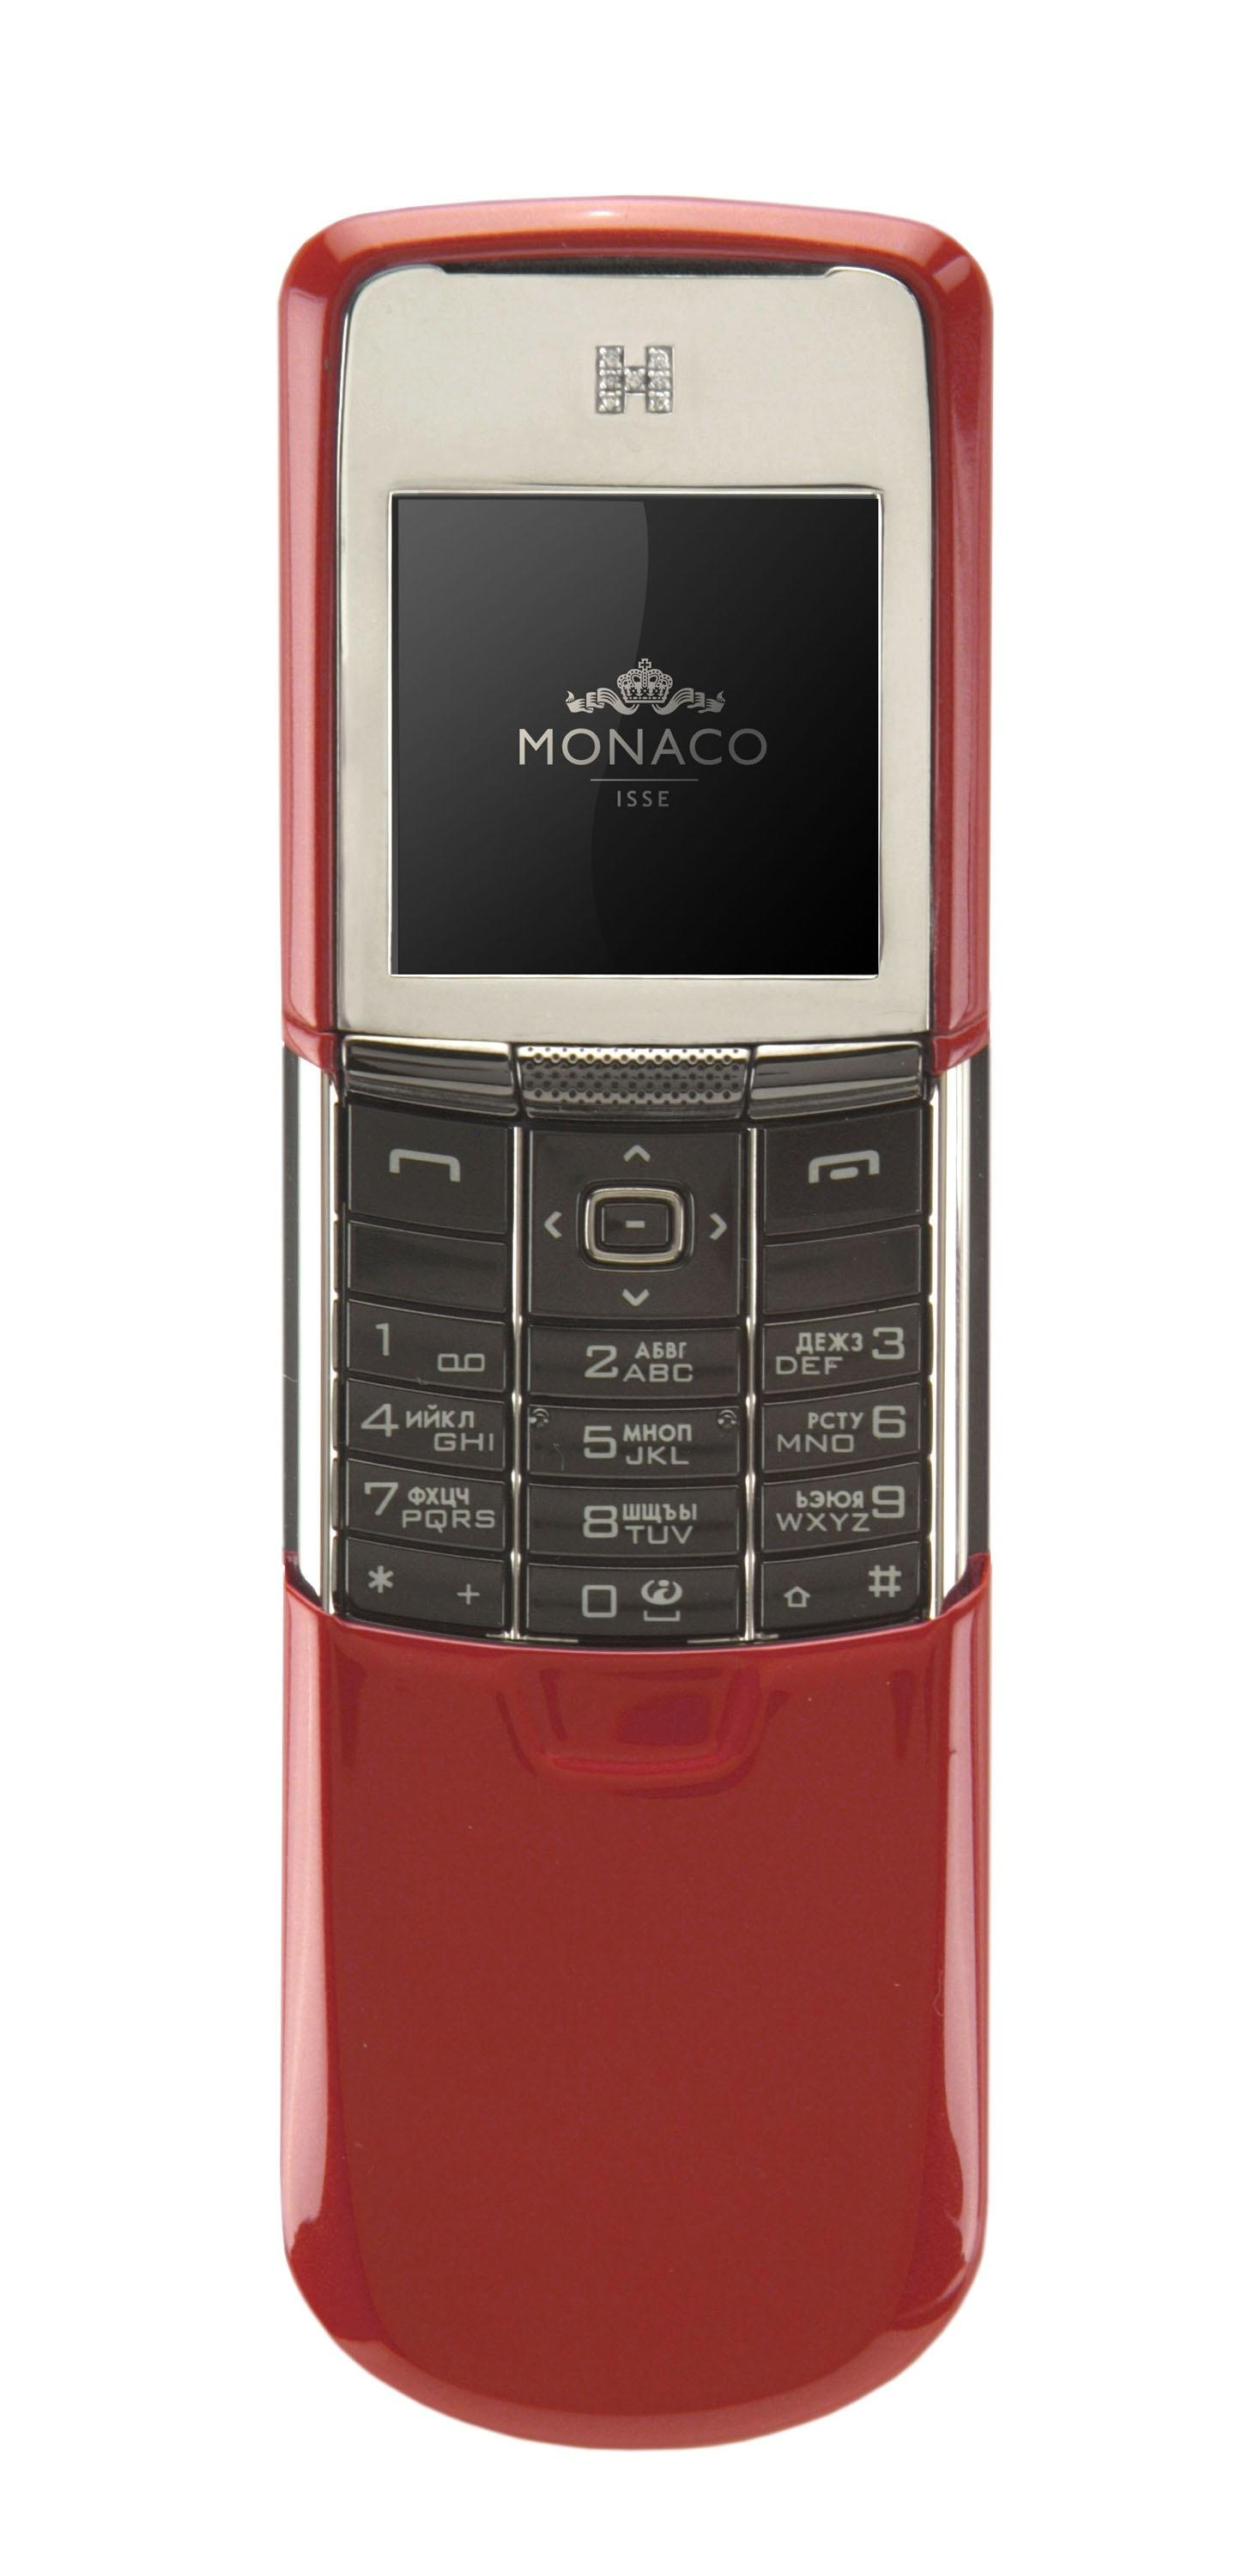 dwp_monaco_phones_15_wenn1226397